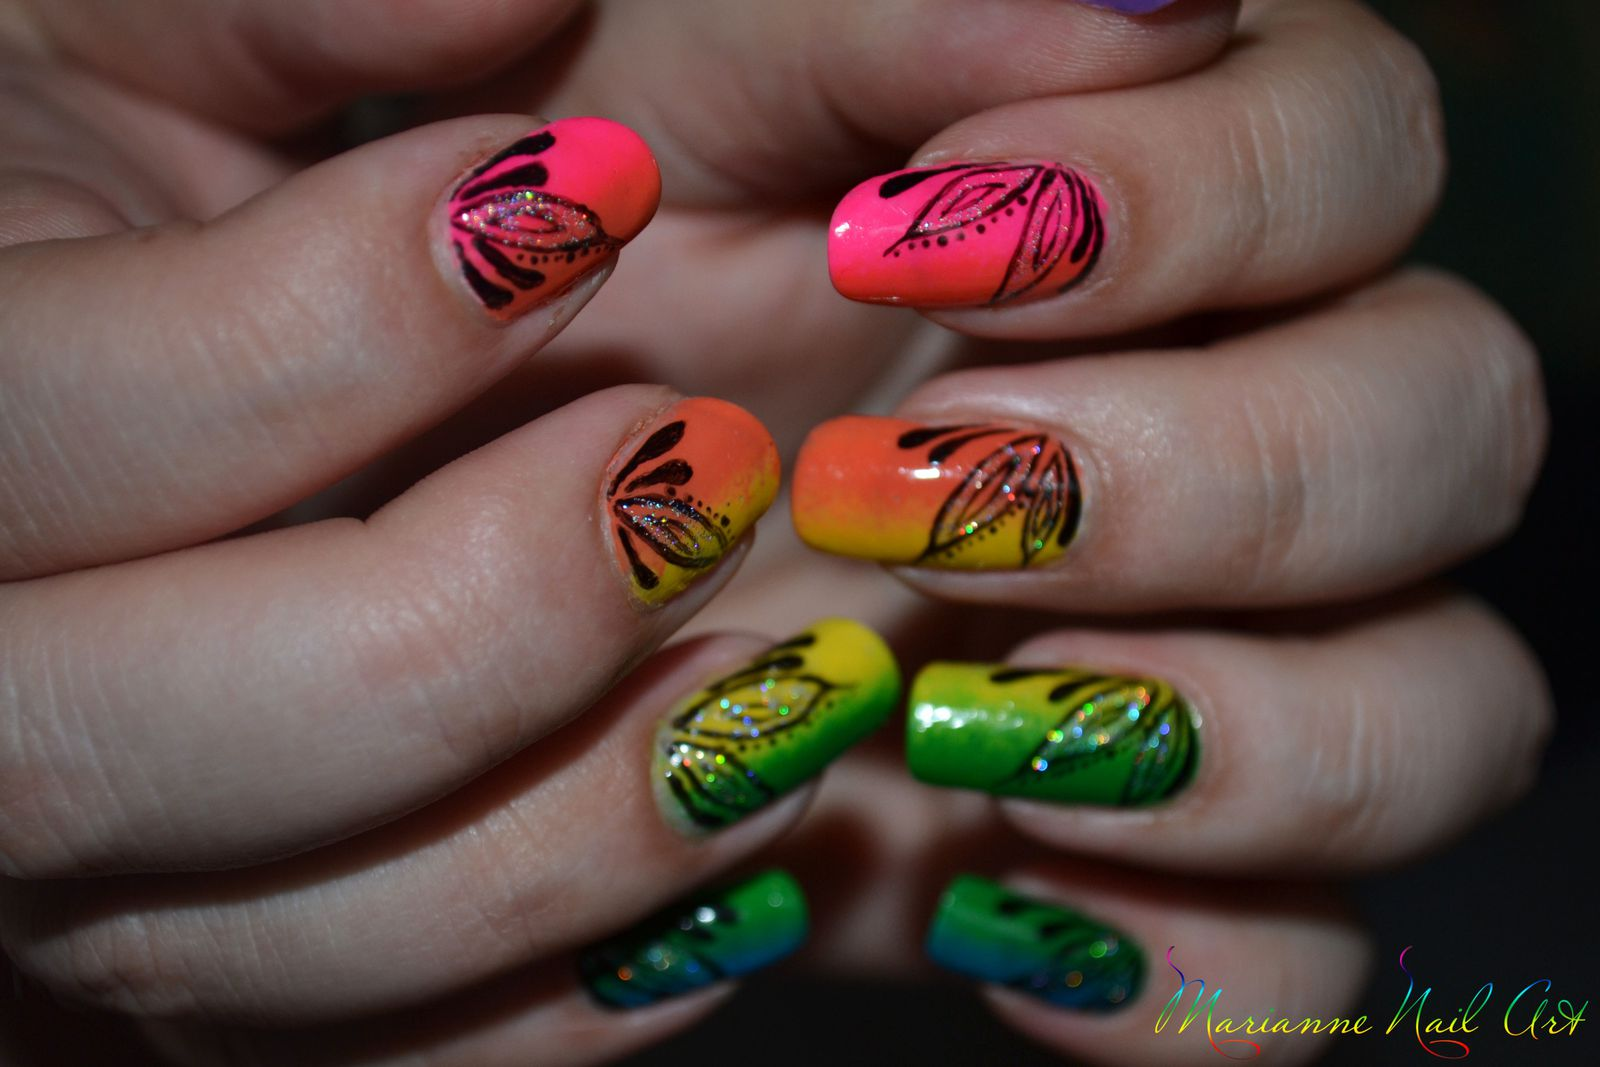 Rainbow nails and flowers